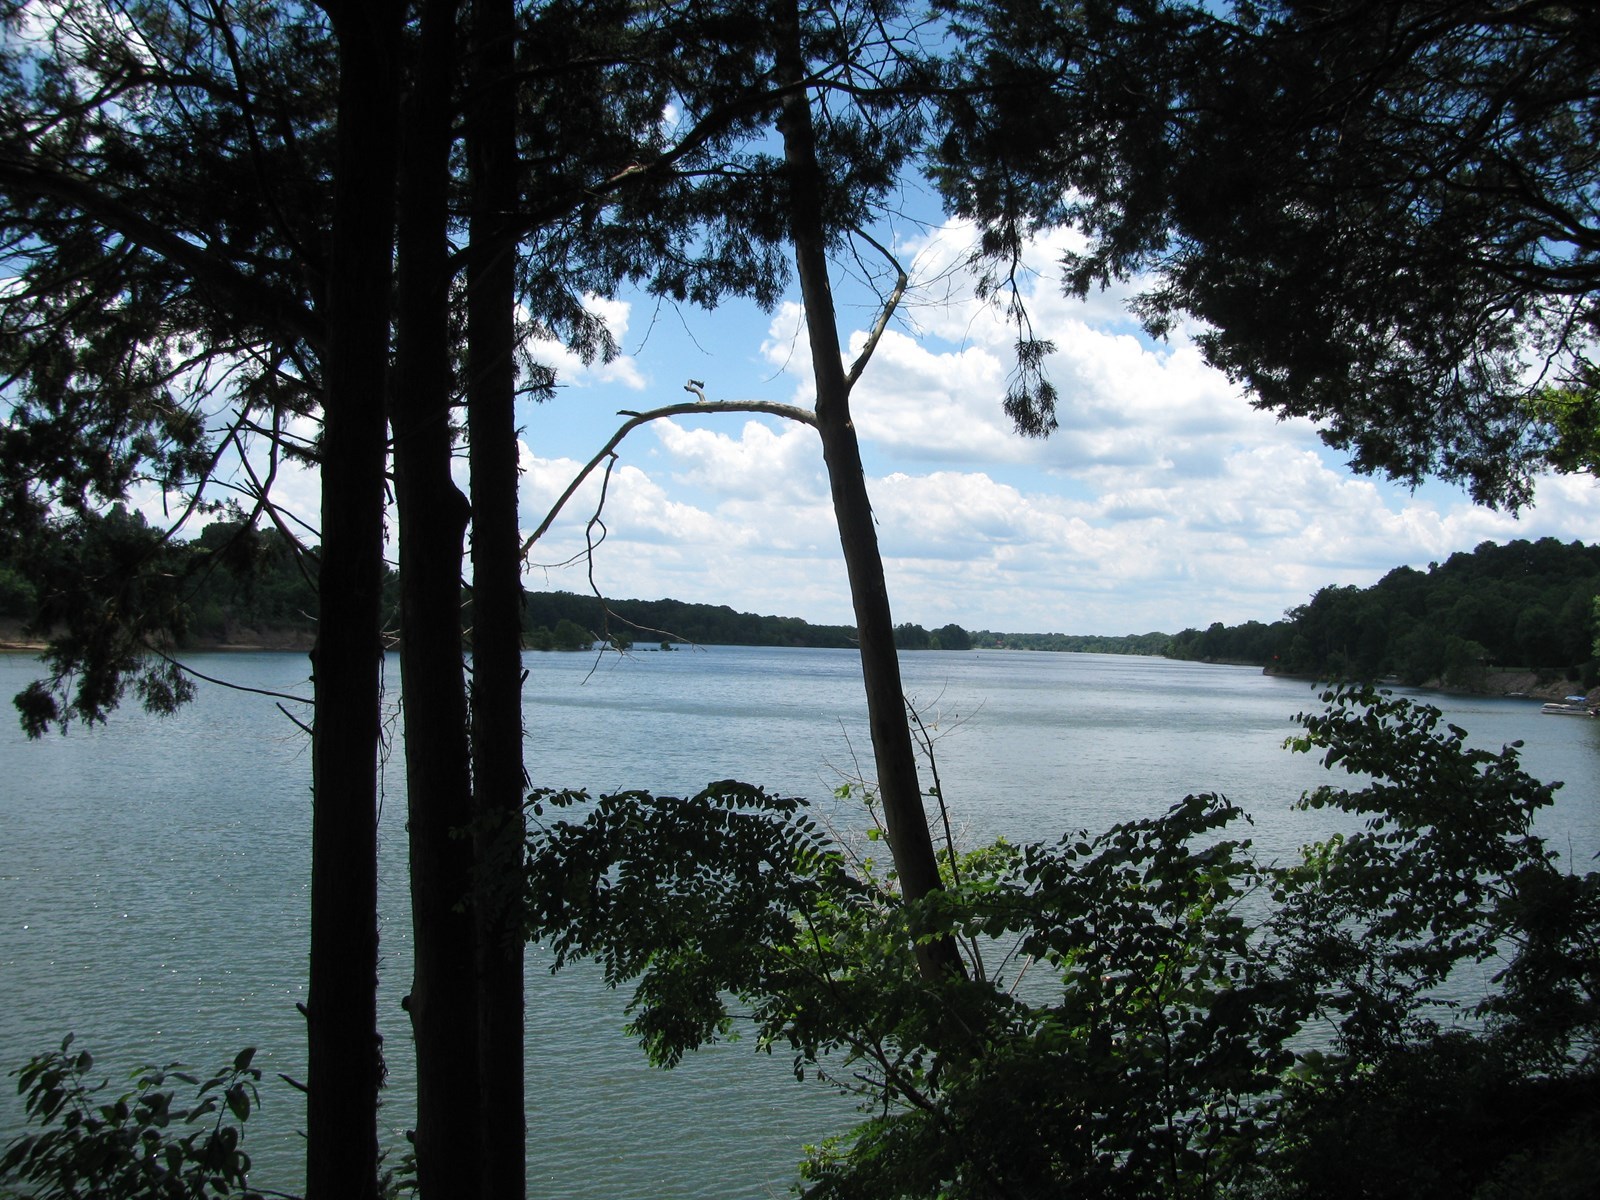 TENNESSEE RIVER LAND FOR SALE NEAR SAVANNAH, TN